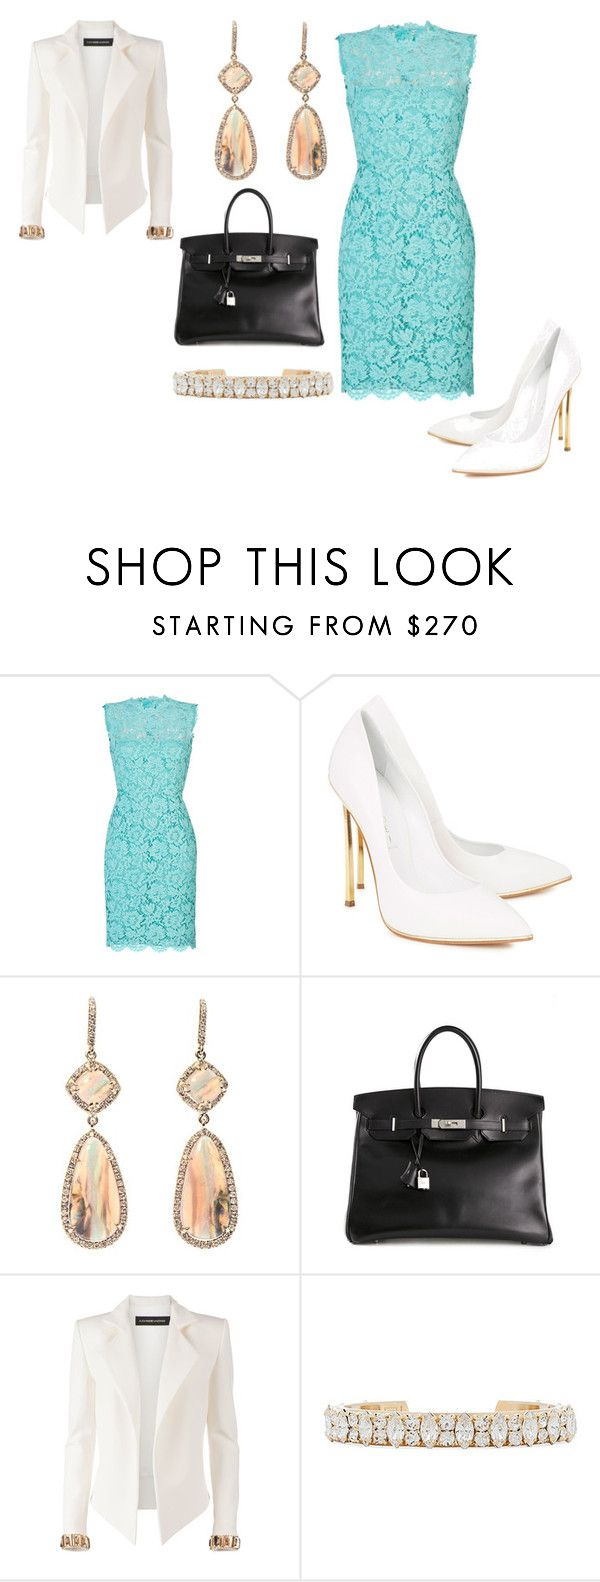 """""""Untitled #24586"""" by edasn12 ❤ liked on Polyvore featuring Valentino, Casadei, NSR Nina Runsdorf, Hermès, Alexandre Vauthier and DANNIJO"""